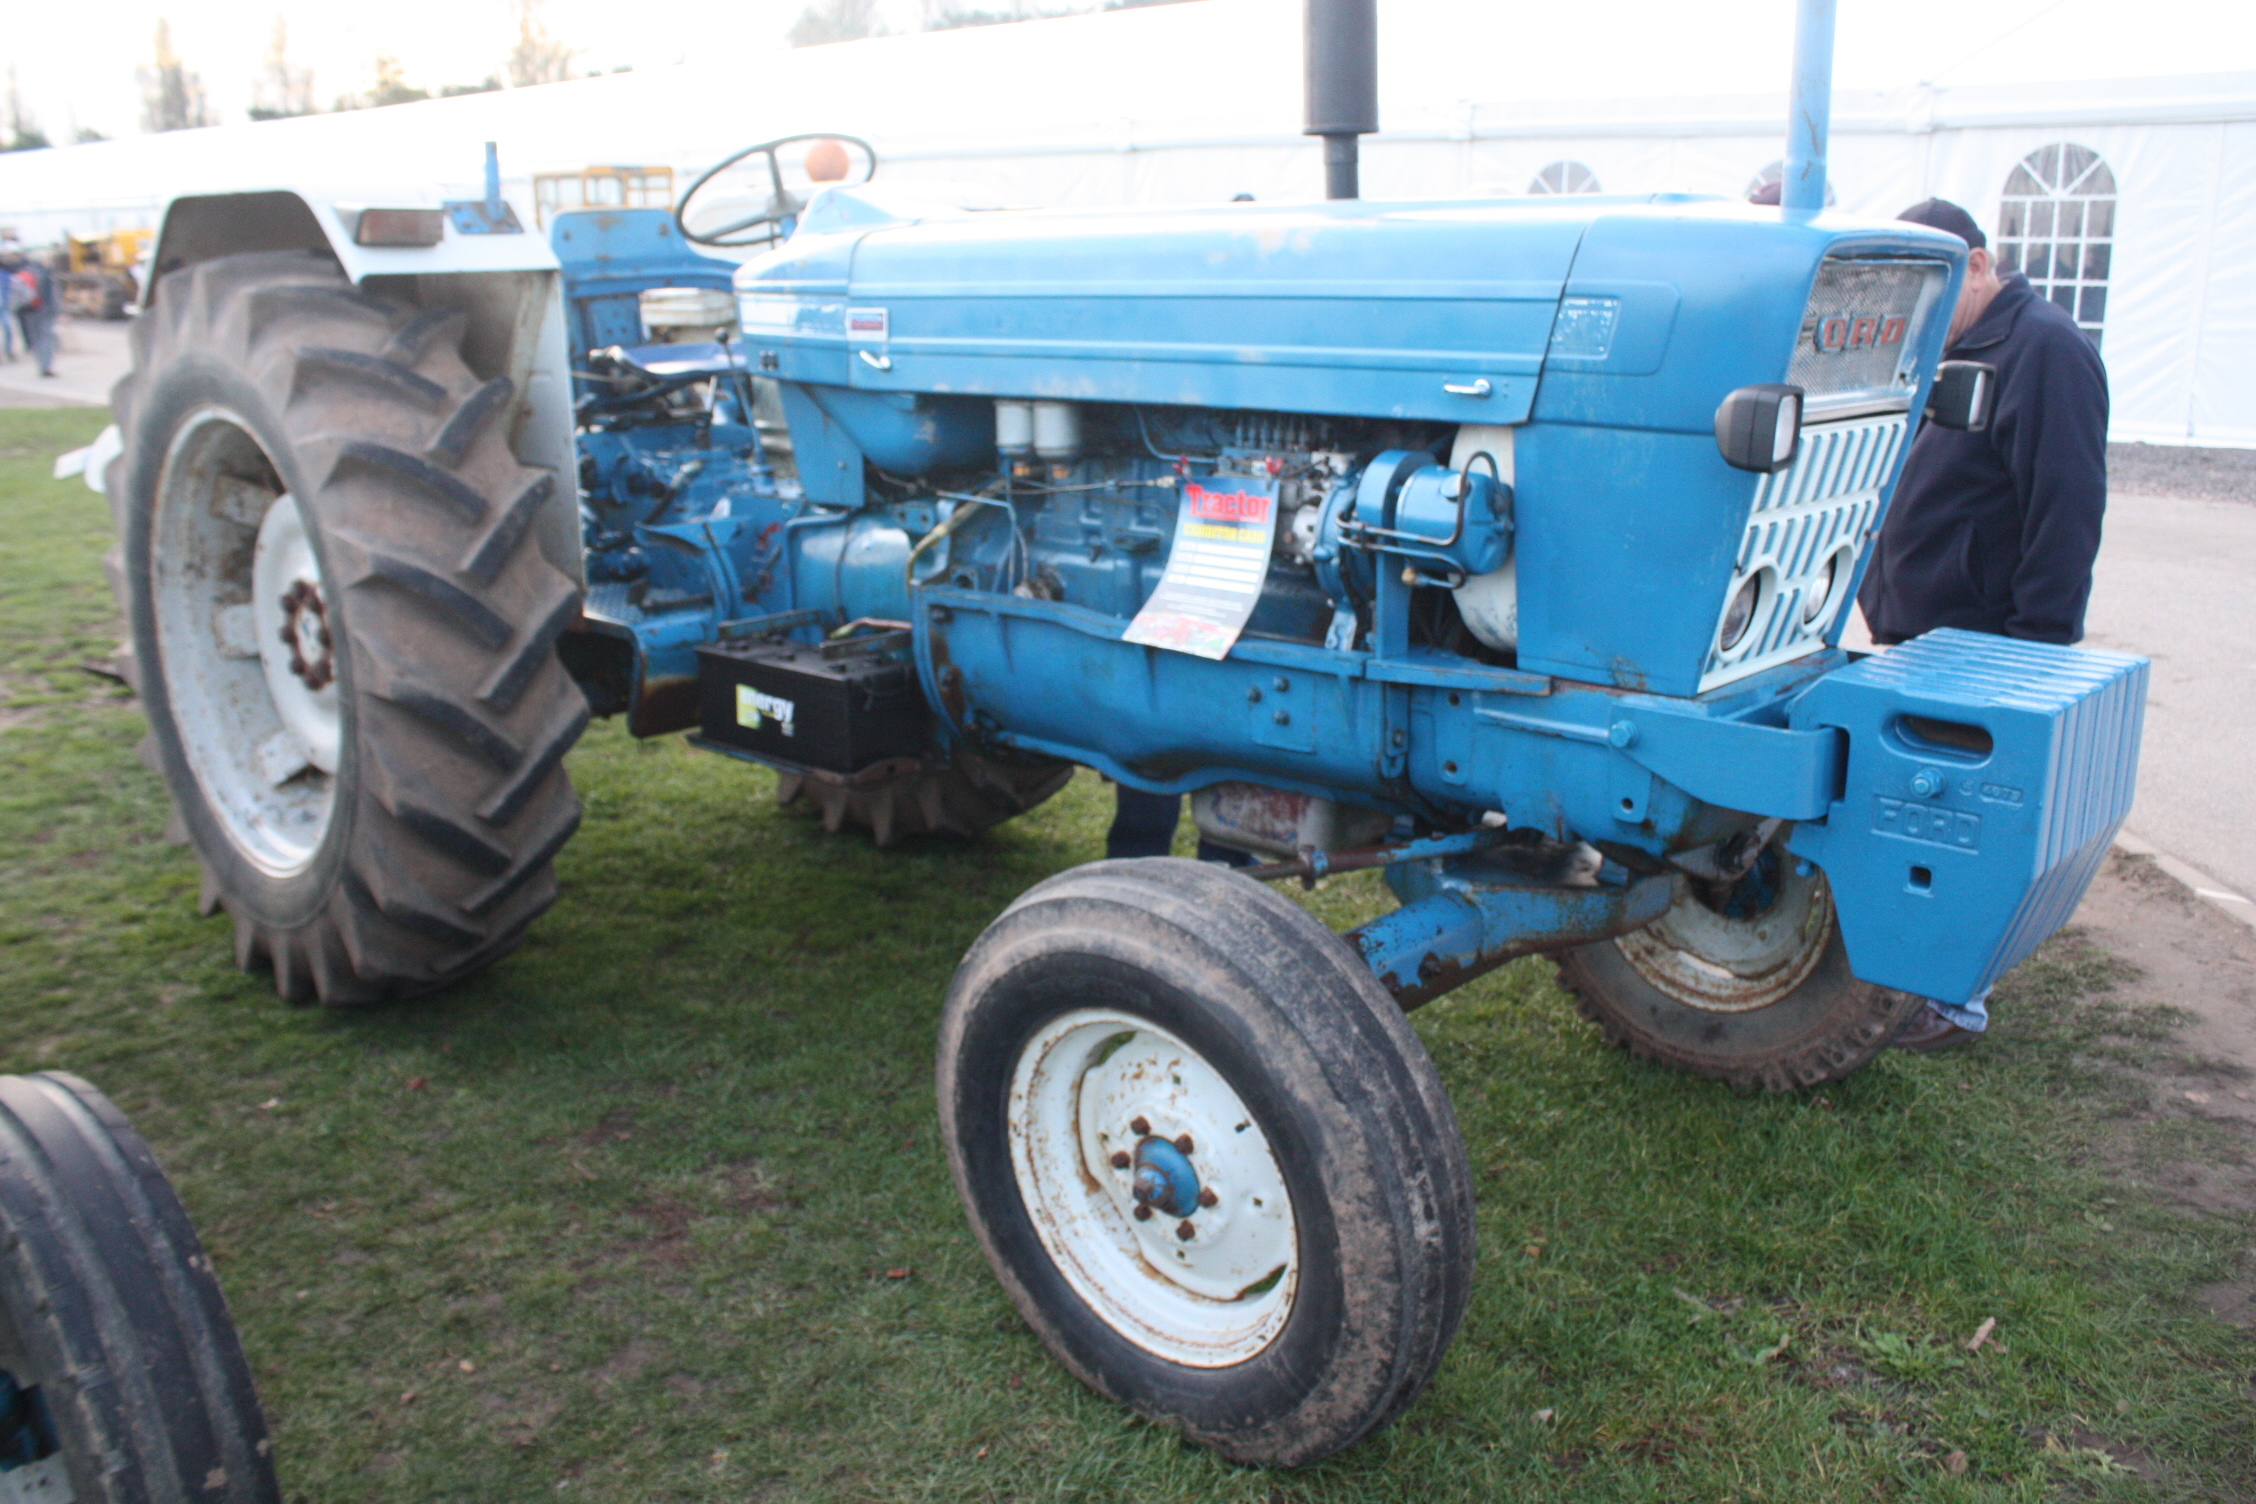 tractors walker sold com ford incl for jtpmachinery canopy is g loader great engine with used sale au tractor rops trade in liquid a gst only cooled sorry